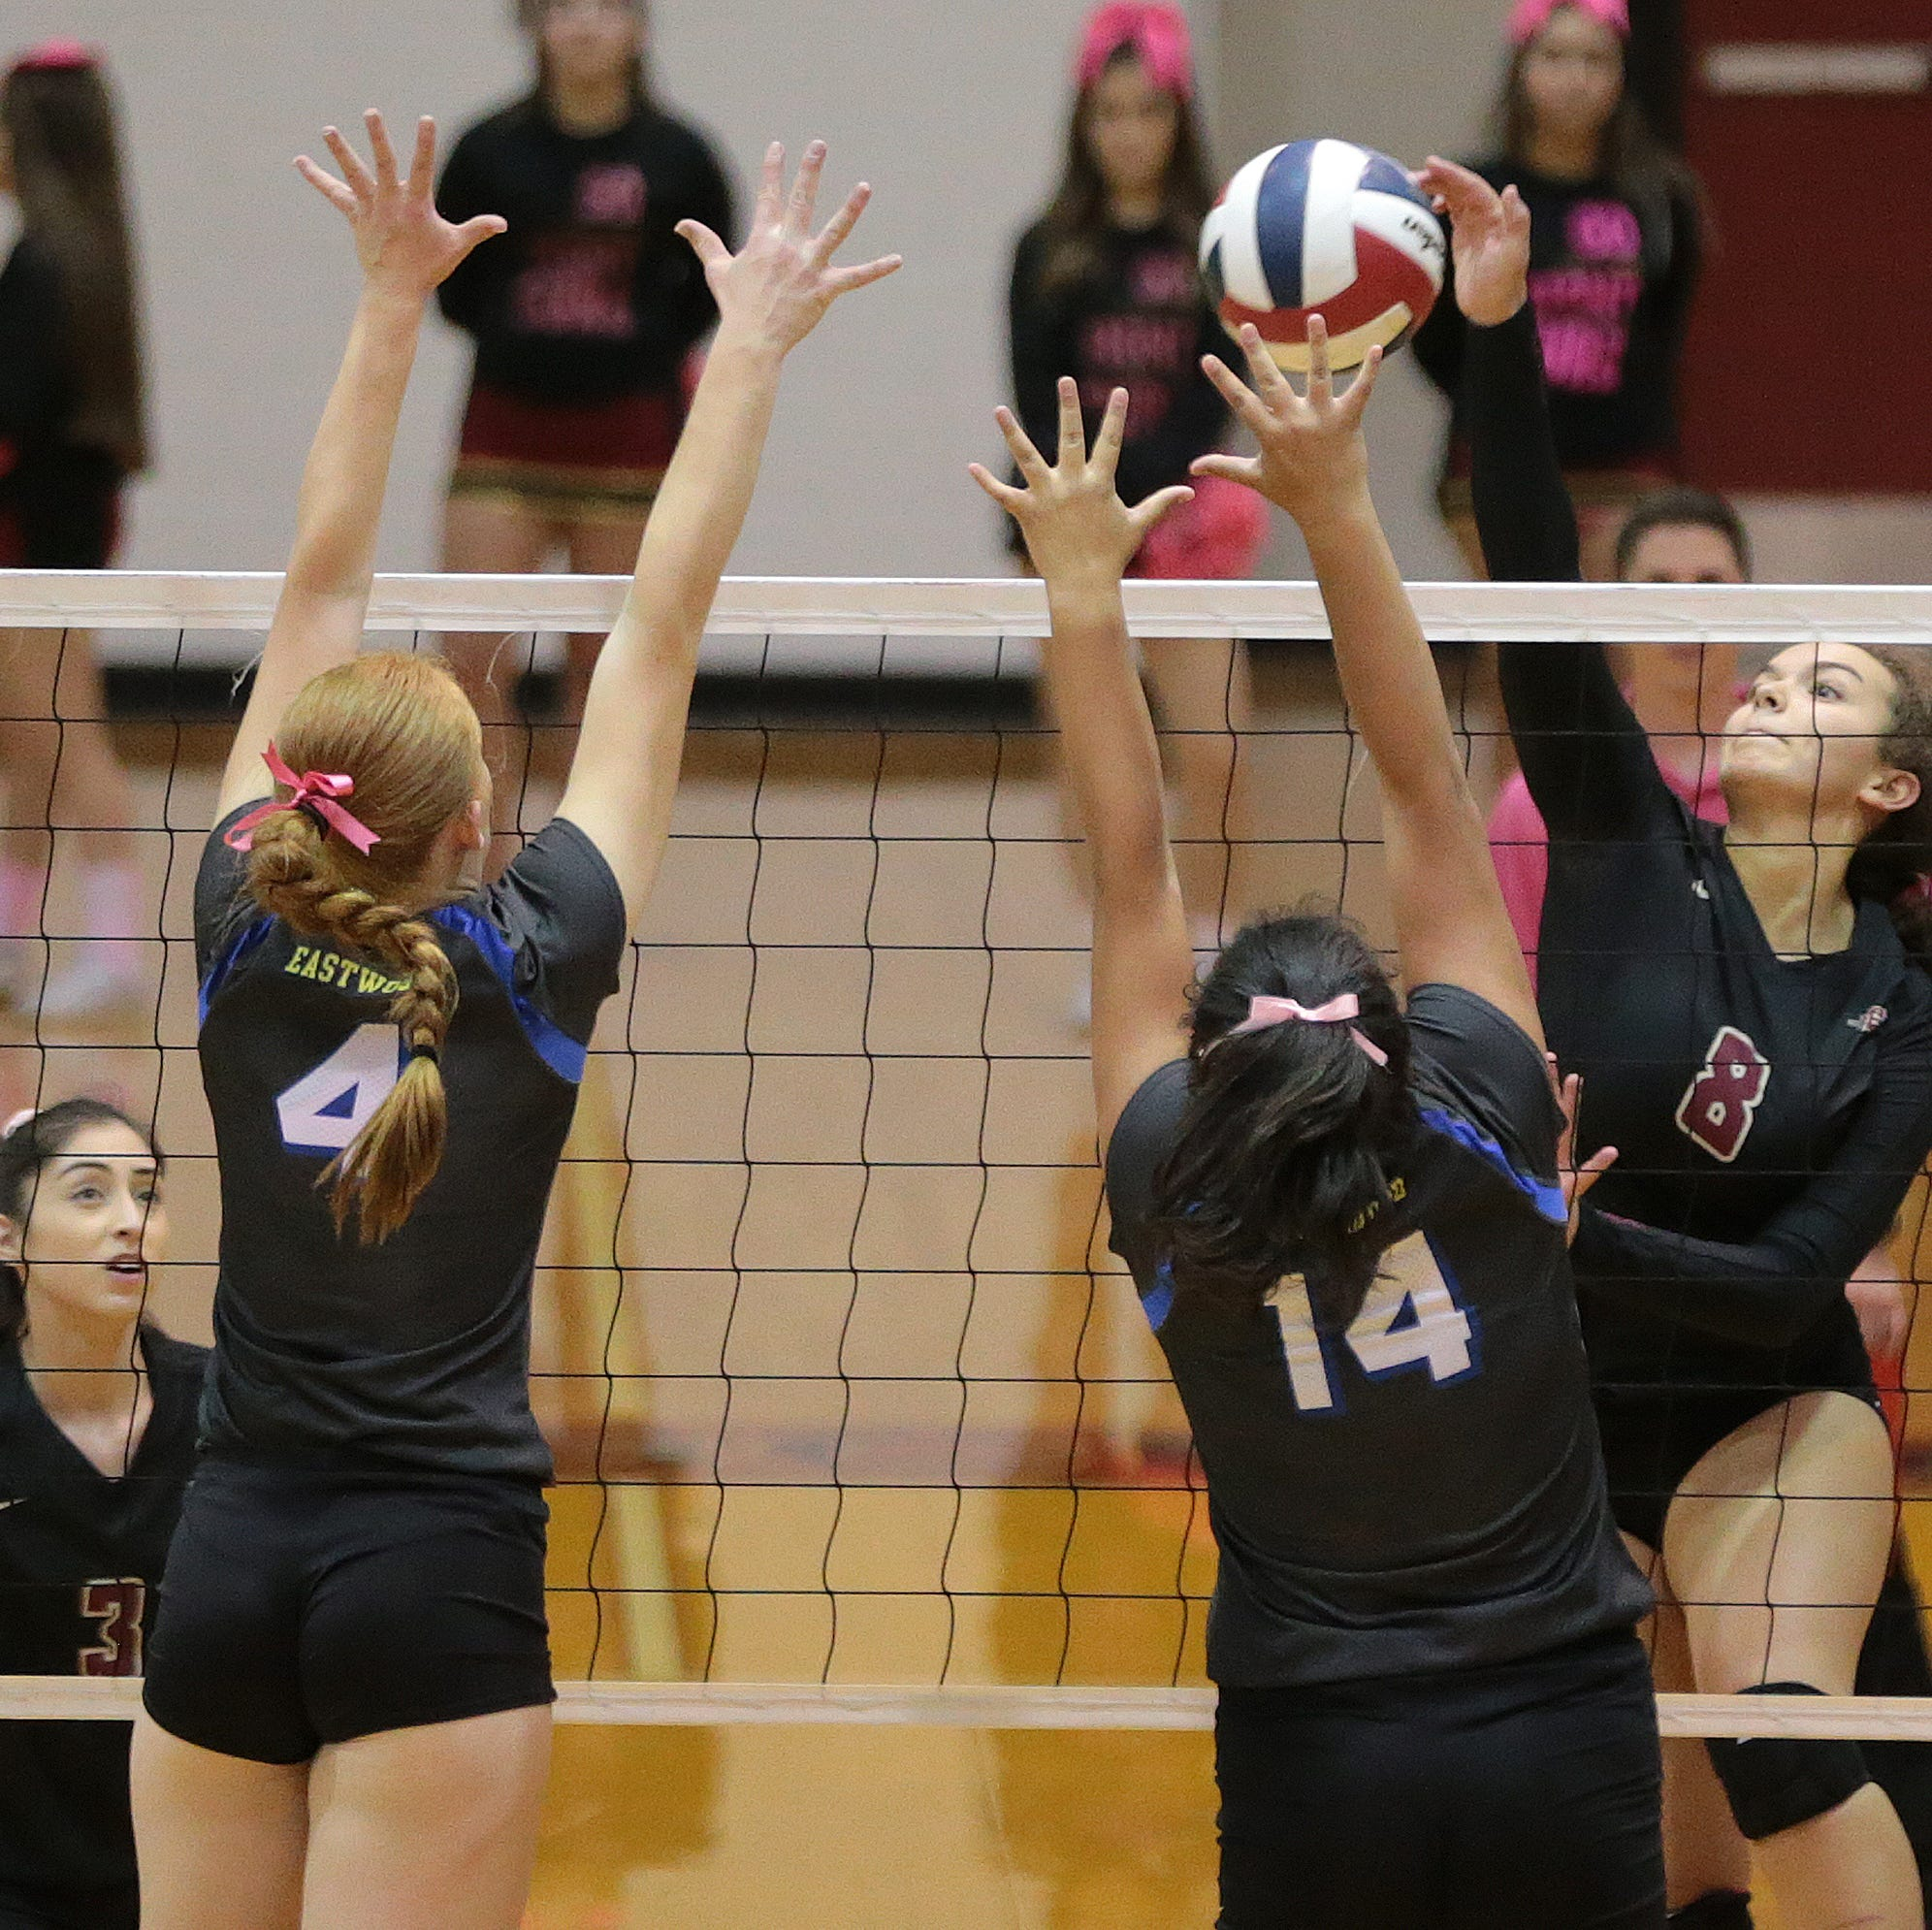 El Dorado Volleyball defeated Eastwood Tuesday night to win district in three straight sets. Had Eastwood won, they would have shared the district title.